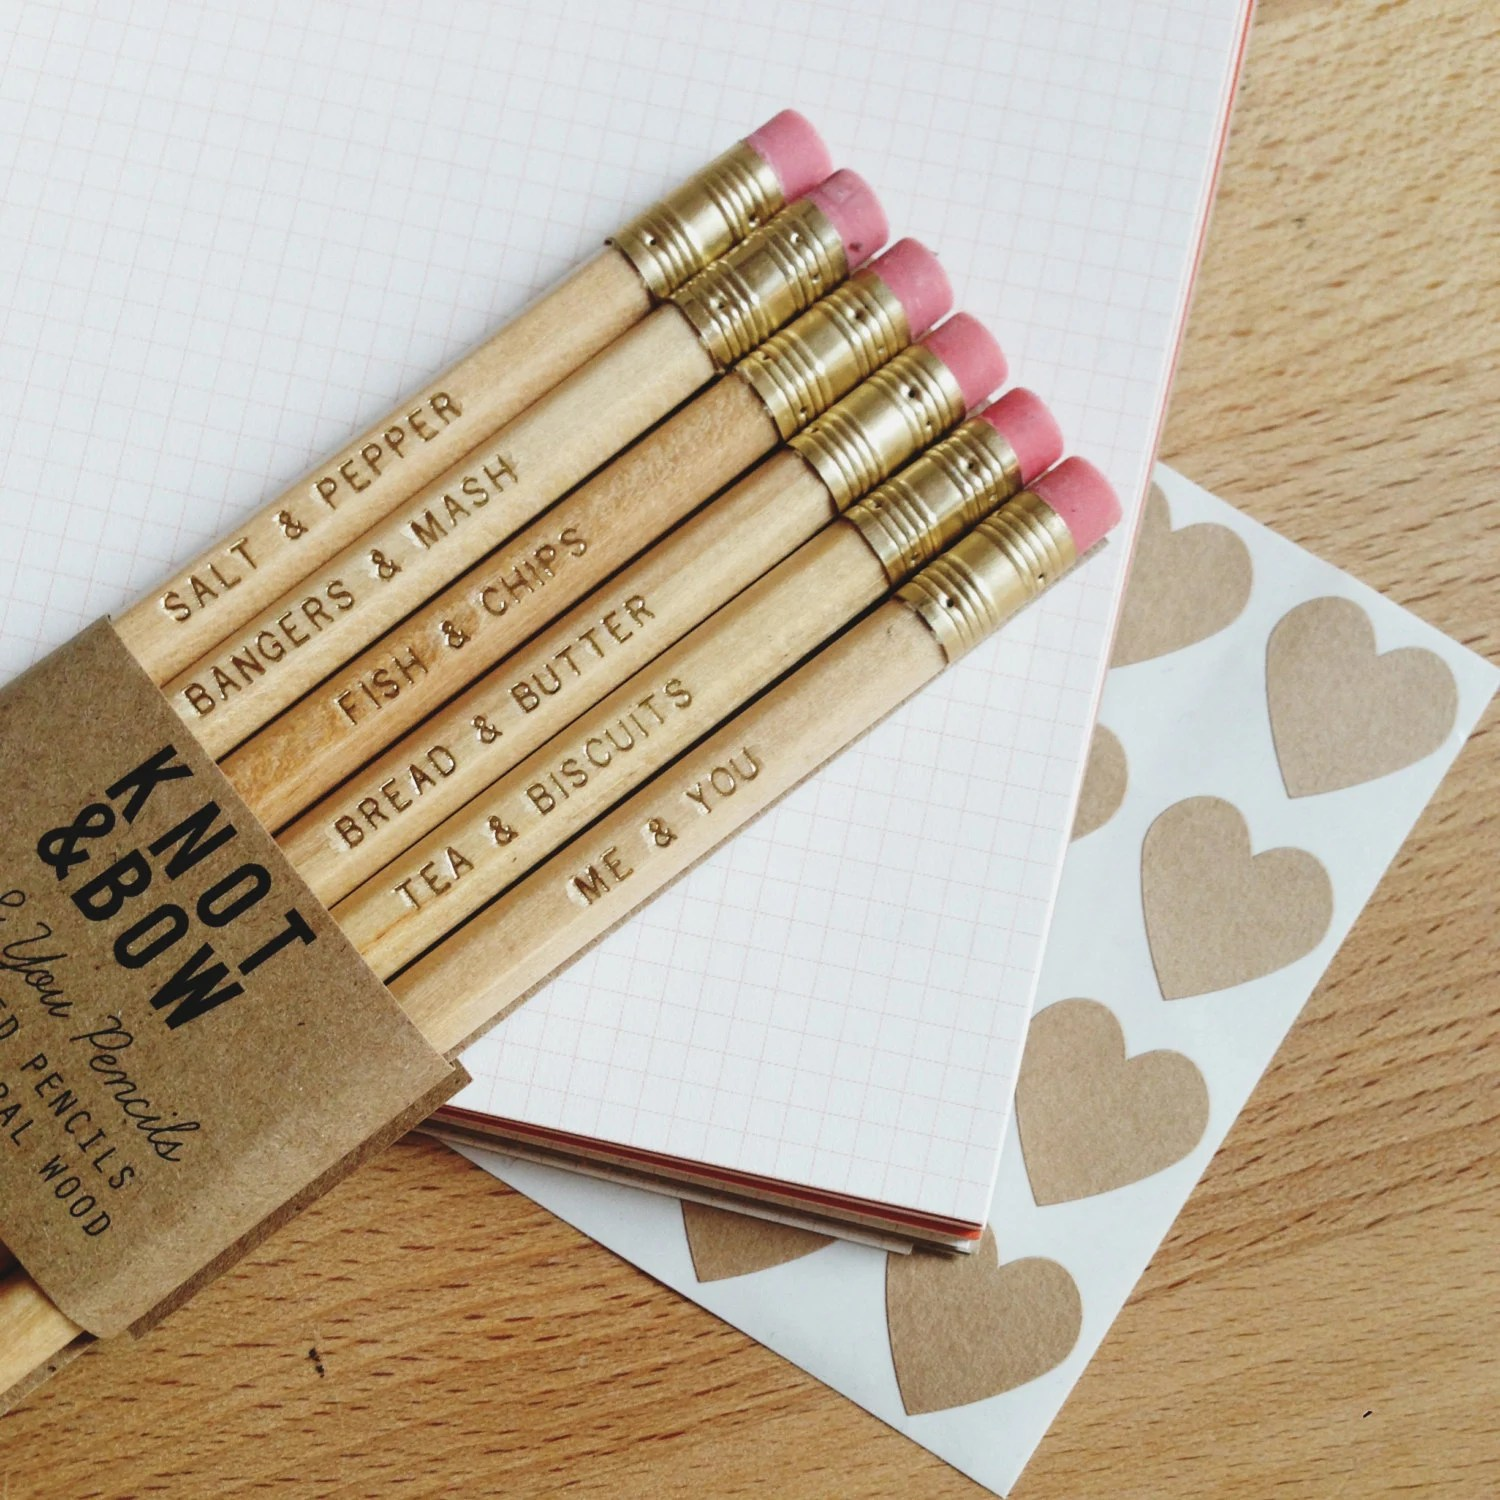 UK Version // Me & You Pencils - Gold Stamped Natural Wood